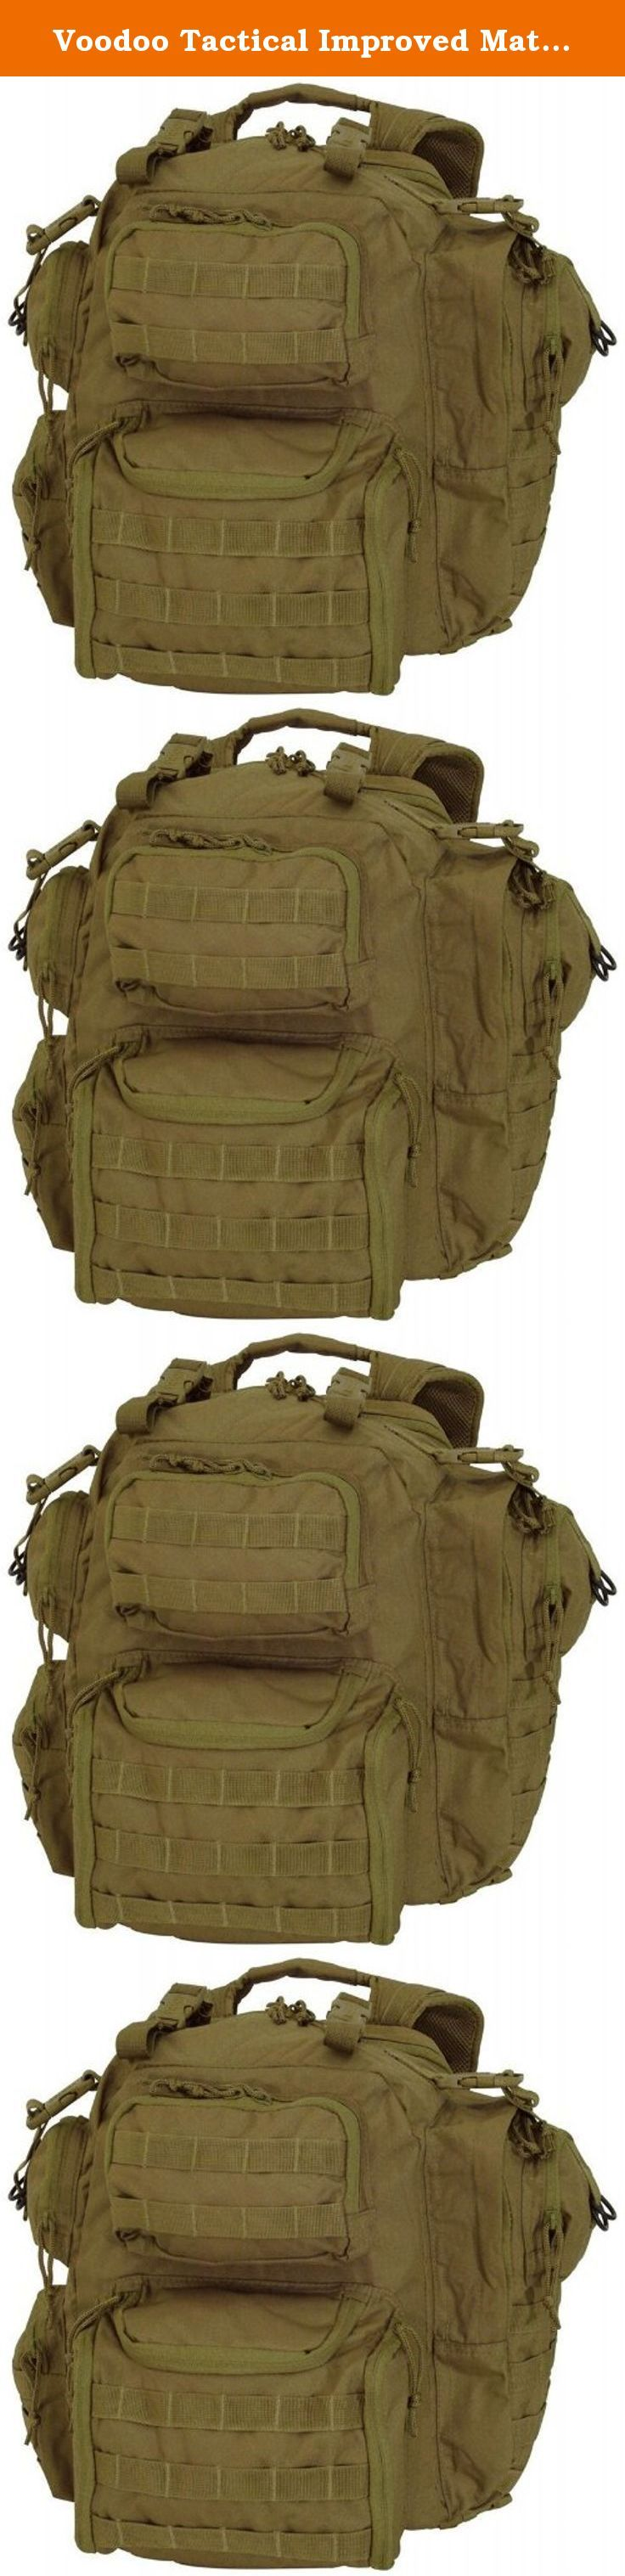 Voodoo Tactical Improved Matrix Pack Backpack MOLLE - Hydration Compatible - 15-9032 Coyote Brown / Tan. The Voodoo Tactical Improved Matrix Pack / Backpack / Rucksack is the perfect size with padded comfort back and adjustable padded shoulder harness with attached electronic instrument pouches. Multiple side, upper and lower rear pockets, all with reversed YKK coil zippers to keep the sand out. Lots of universal / MOLLE webbing for various pouch attachments, integrated handles with extra...